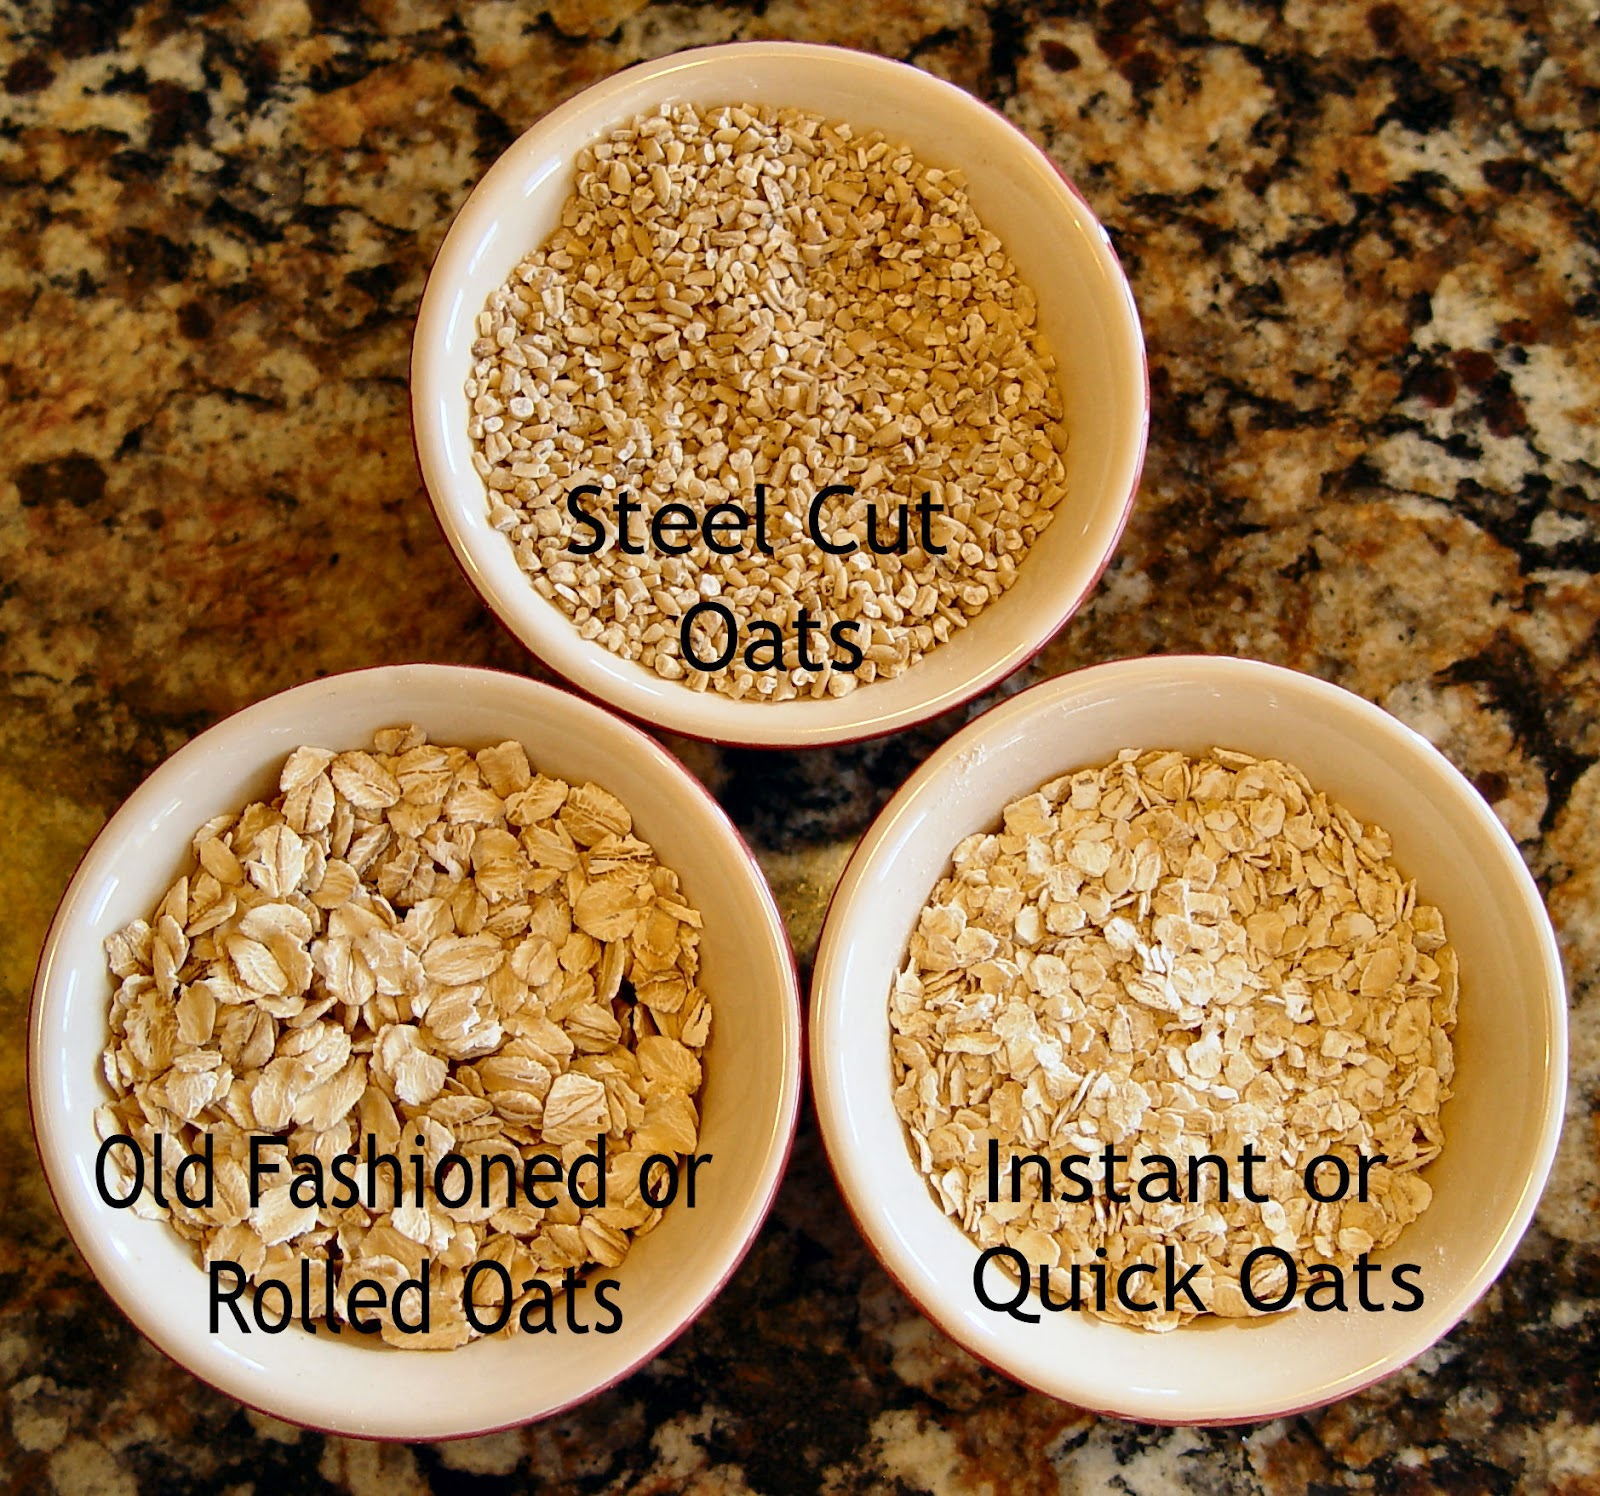 Rolled oats vs old fashioned 68